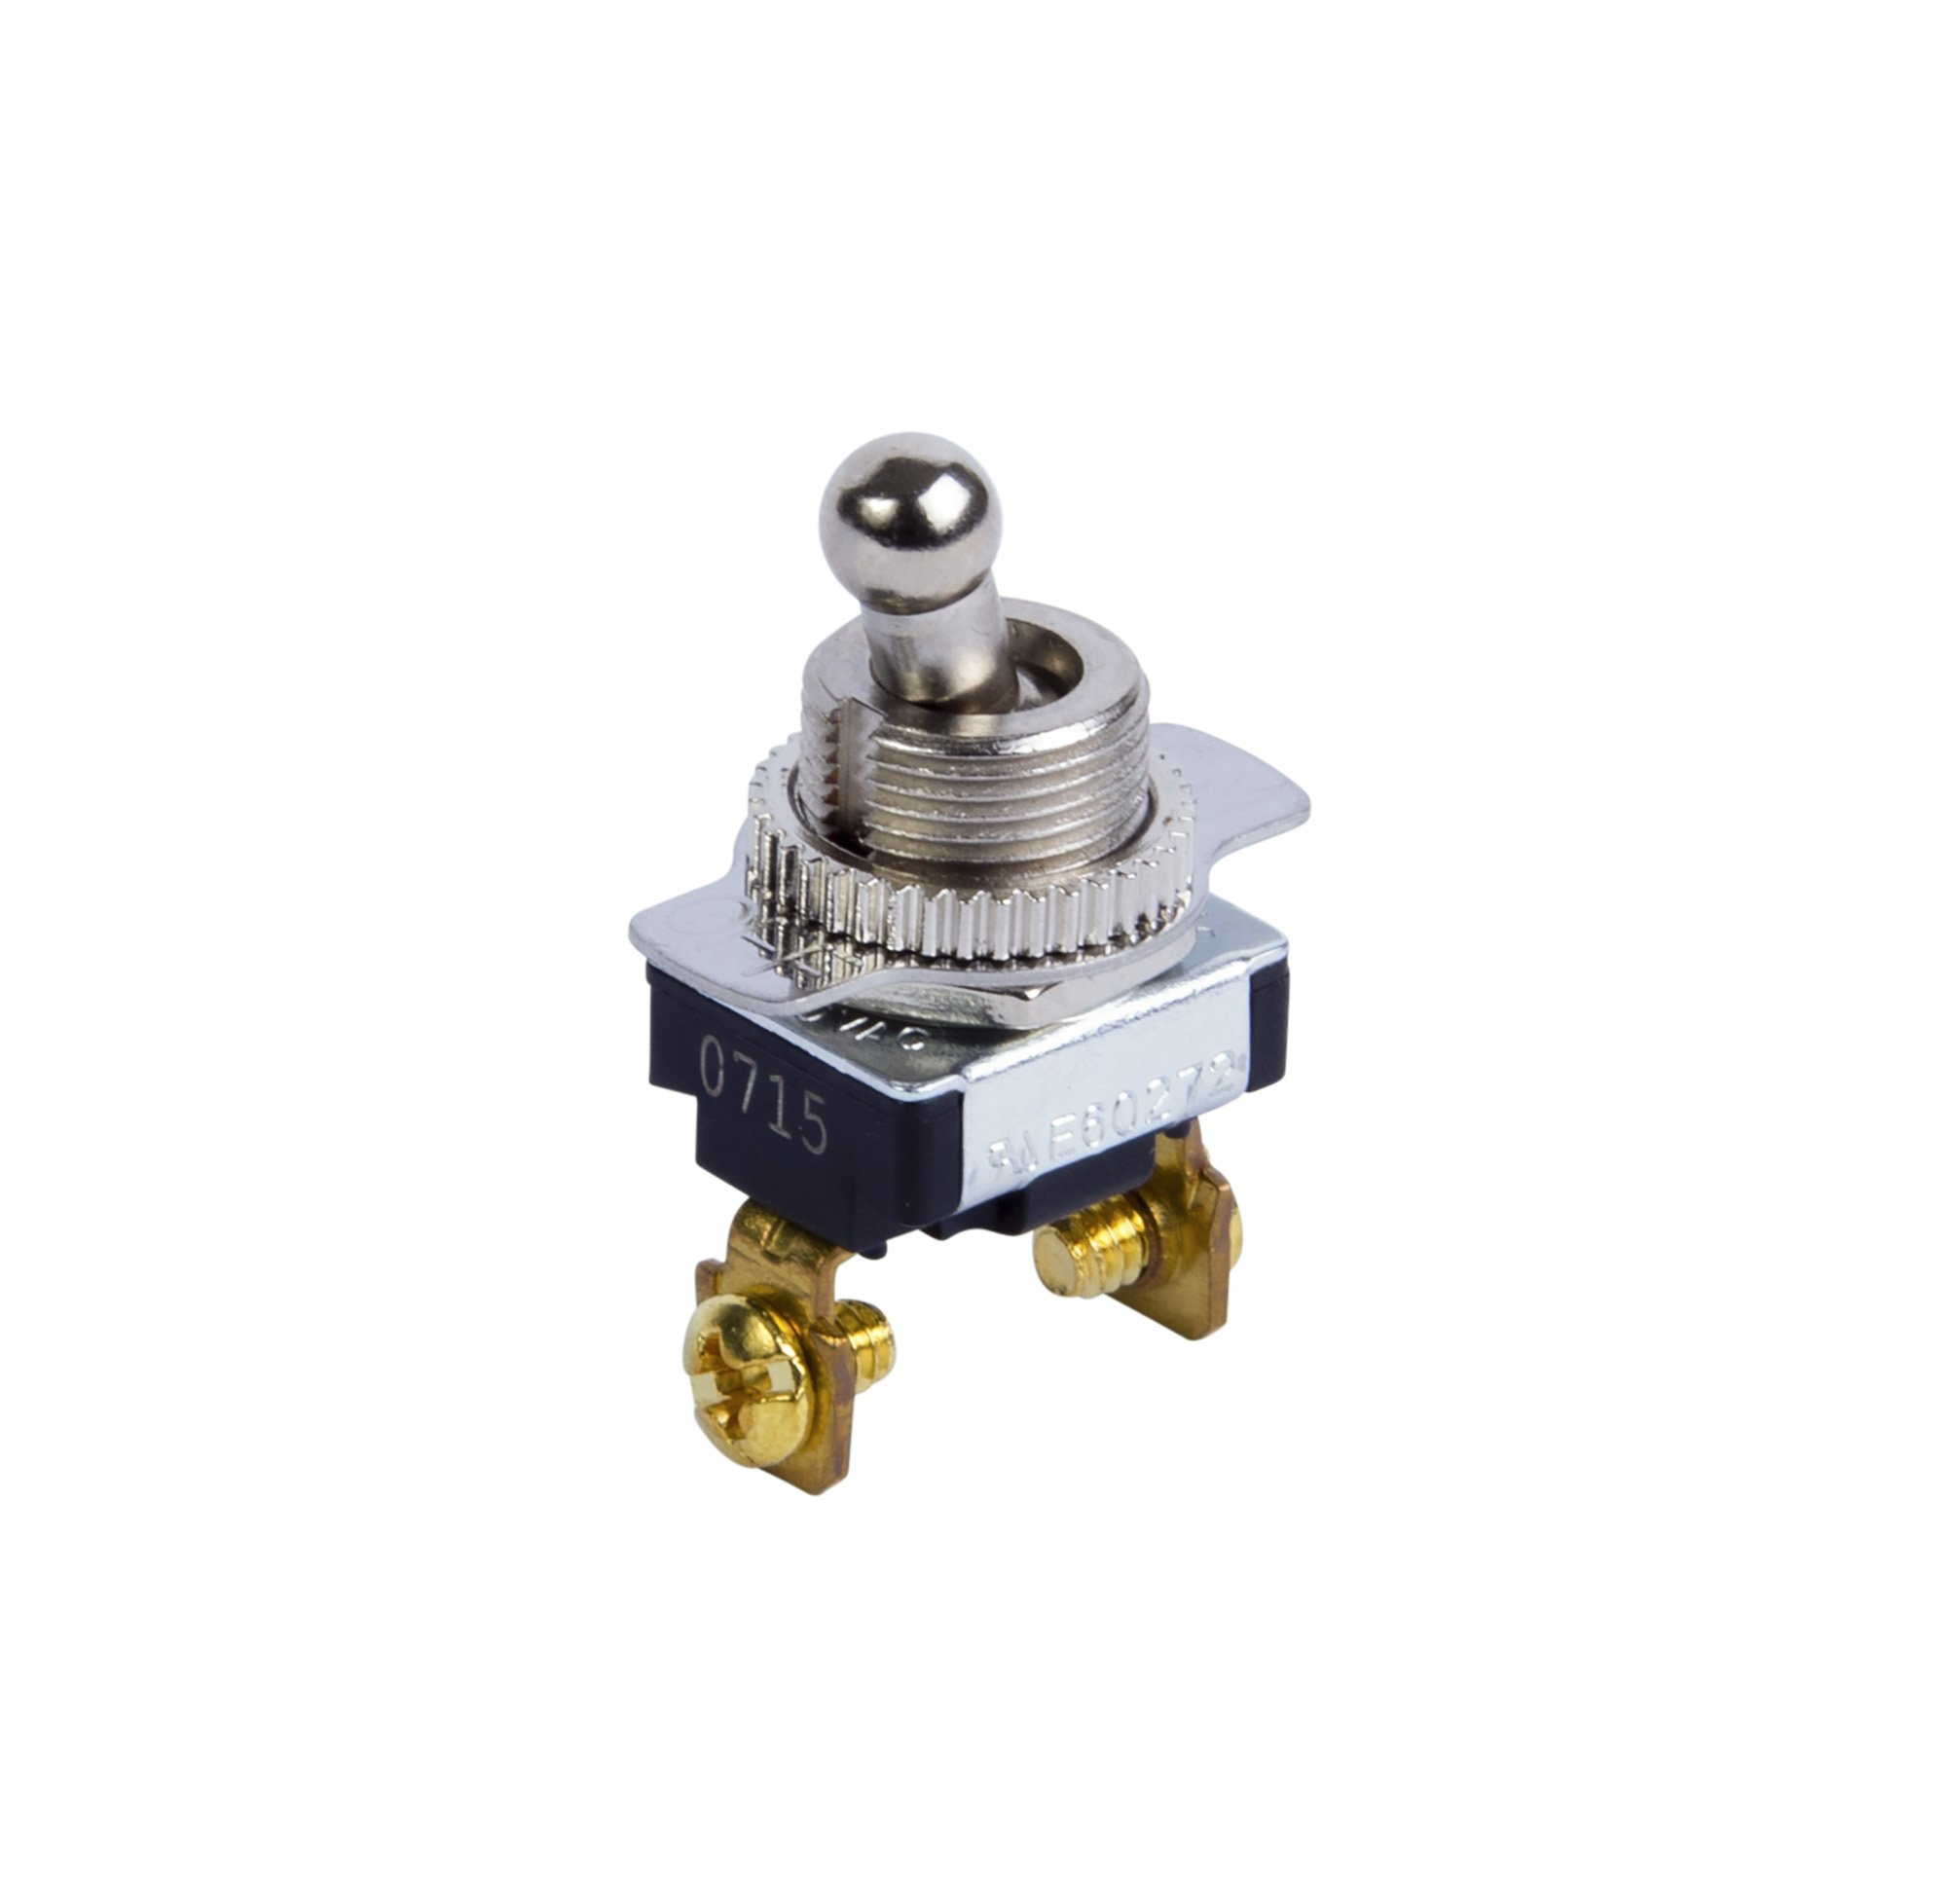 Gardner Bender GSW-124 Electrical Toggle Switch, SPST, ON-OFF, 6 A/120V AC, Screw Terminal